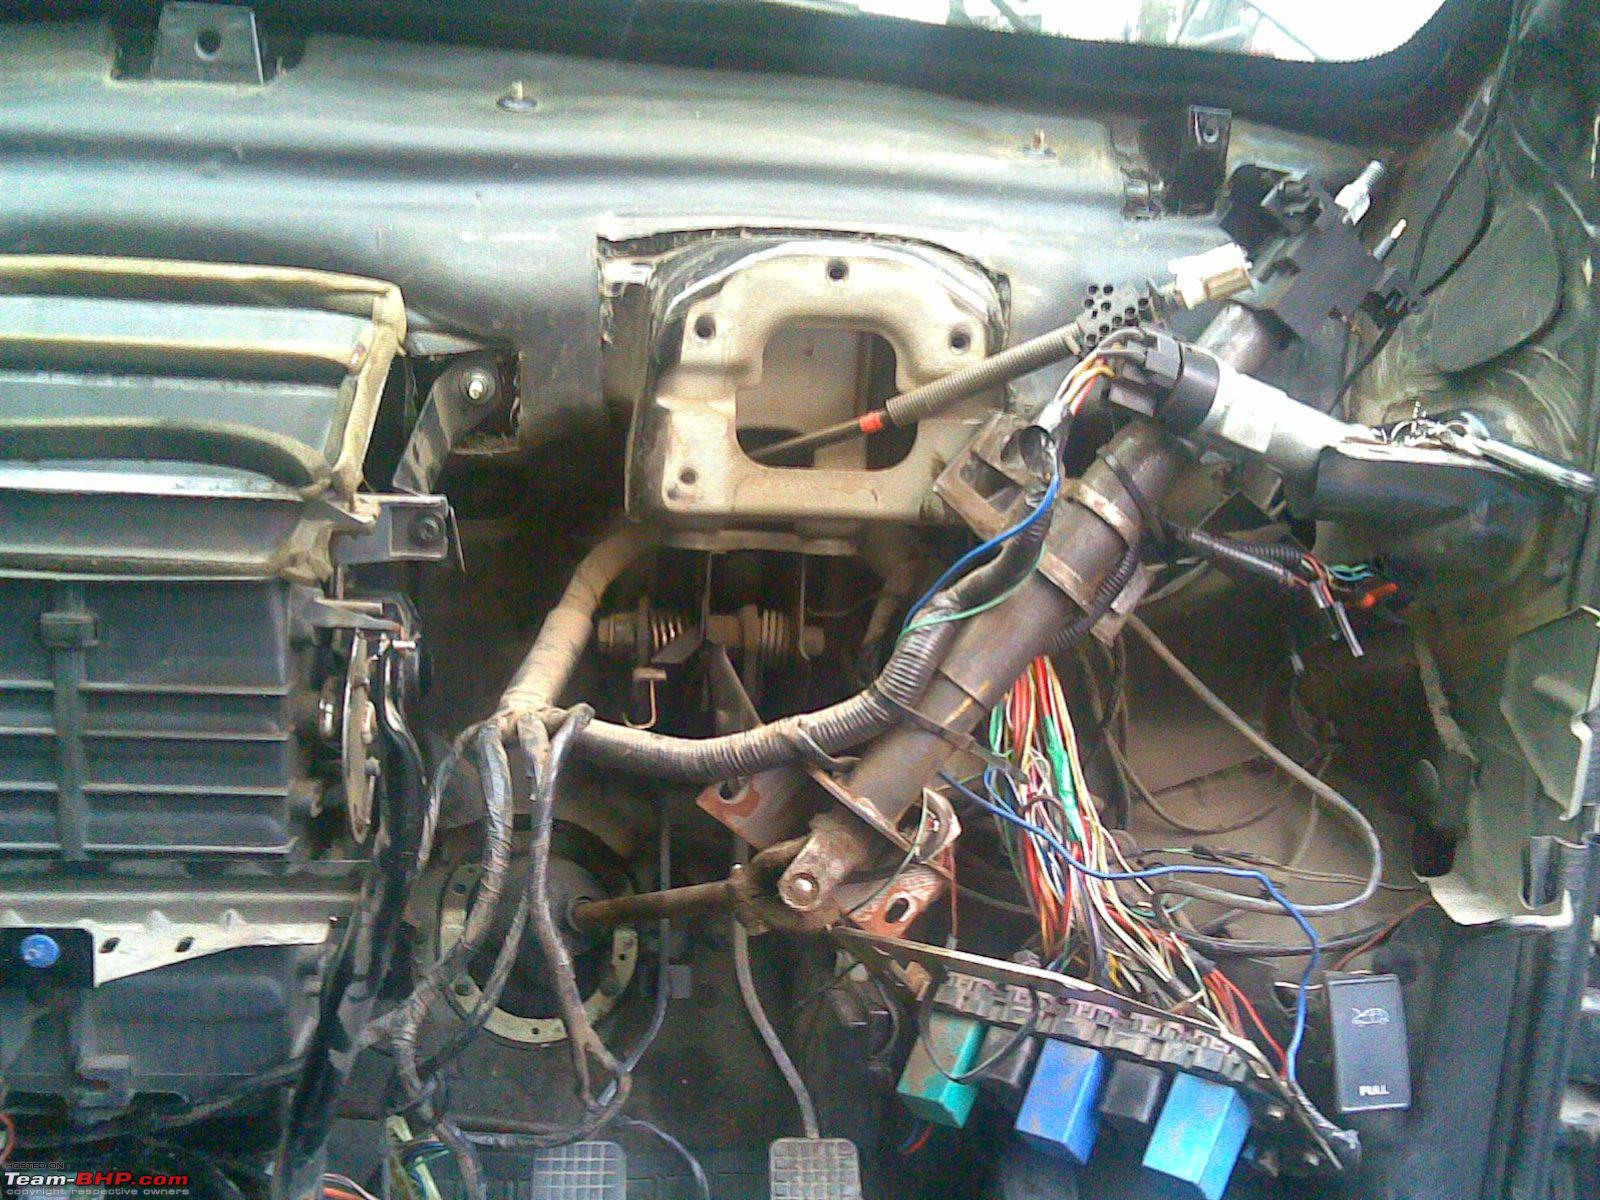 Ac Fuse Ing After Some Time Image001 Jpg